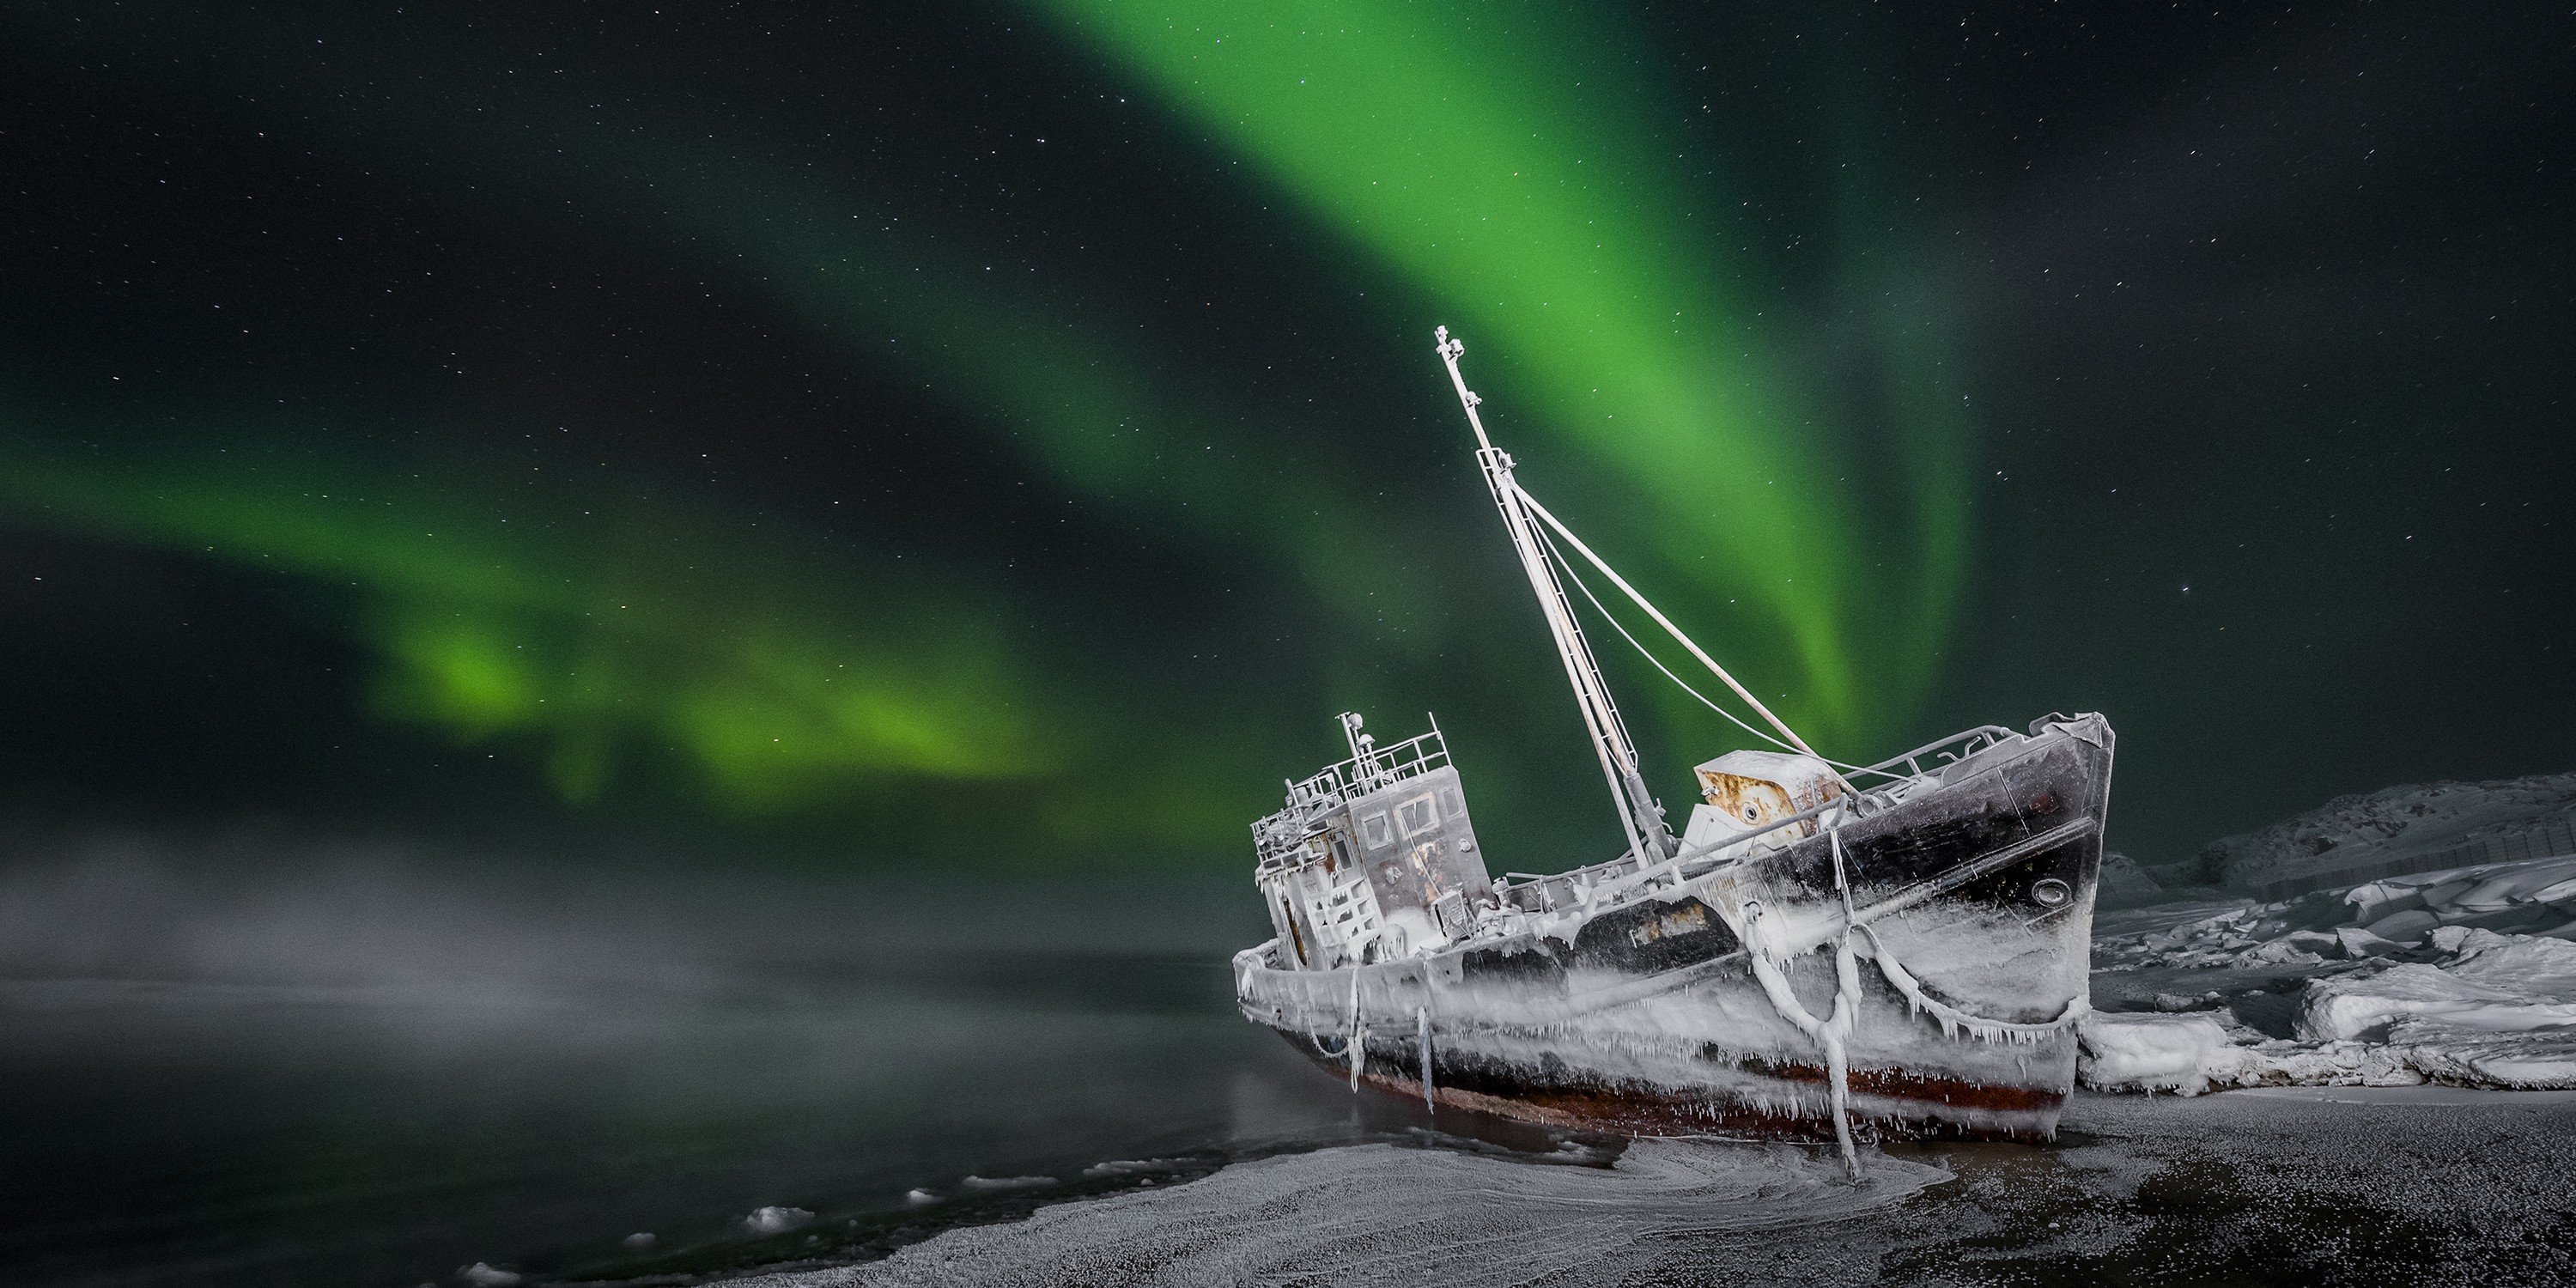 A fine art photograph of a crashed ship backed by a green and black sky with northern lights